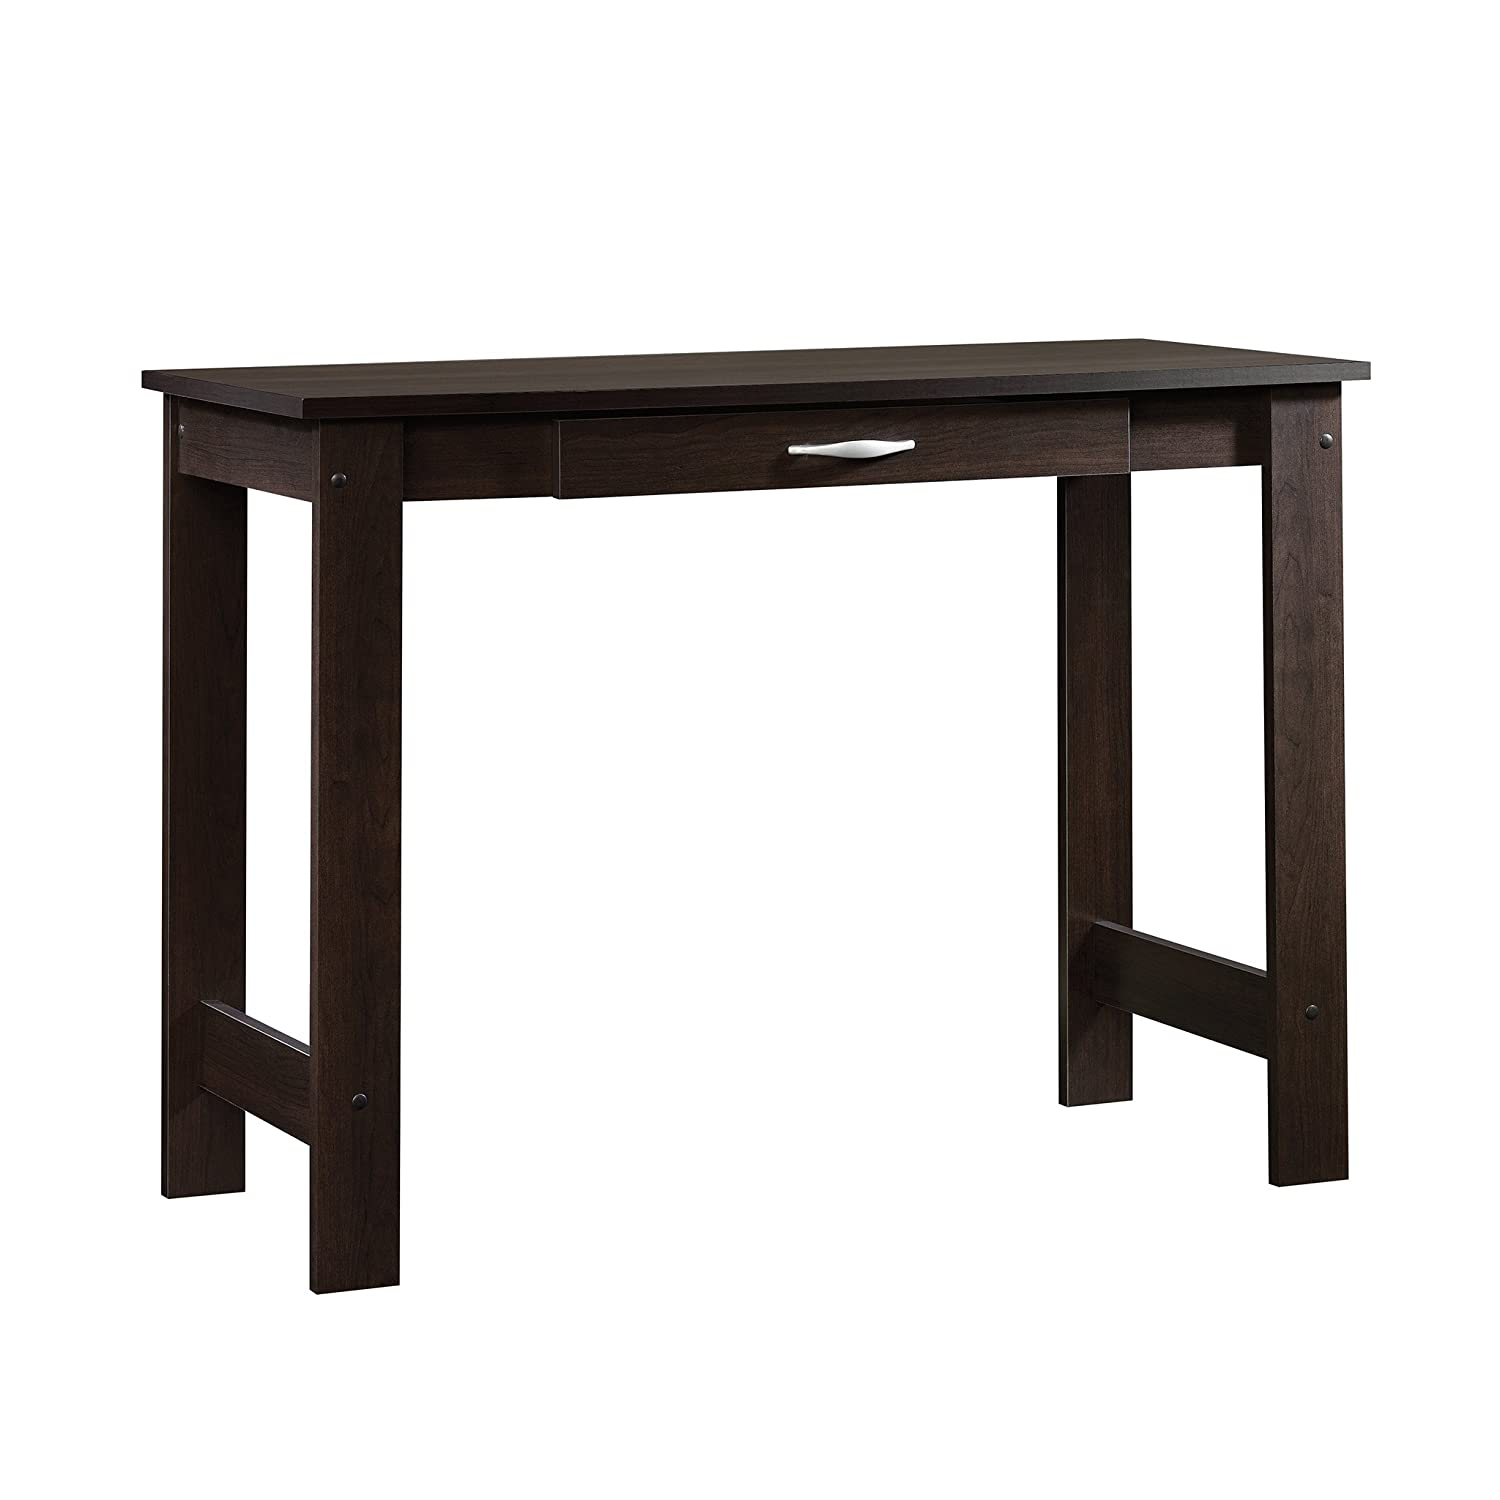 Sauder Beginnings Writing Table, Cherry 412885